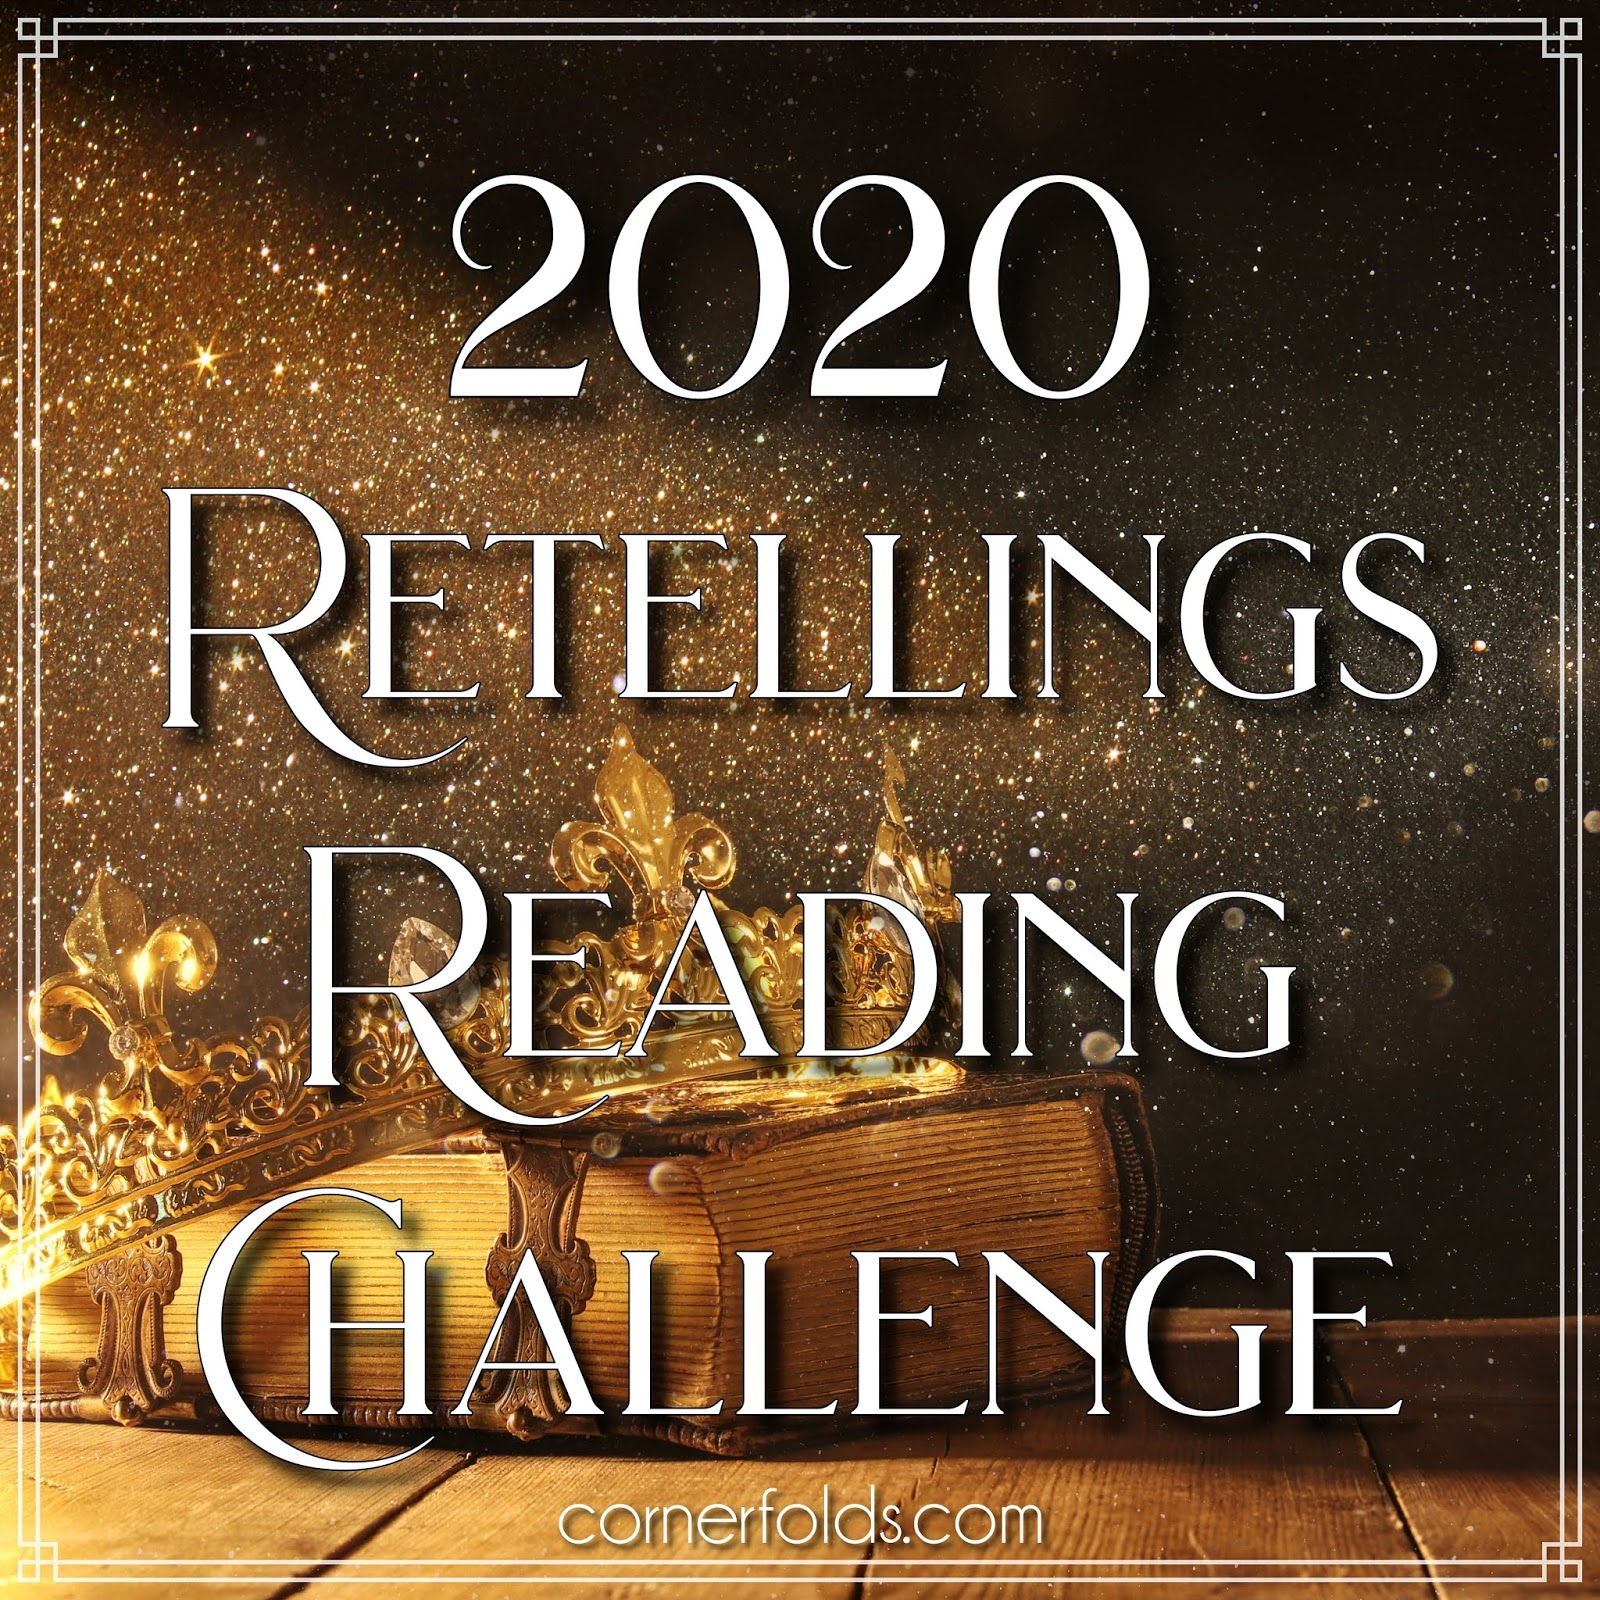 2020 Retellings Reading Challenge Logo